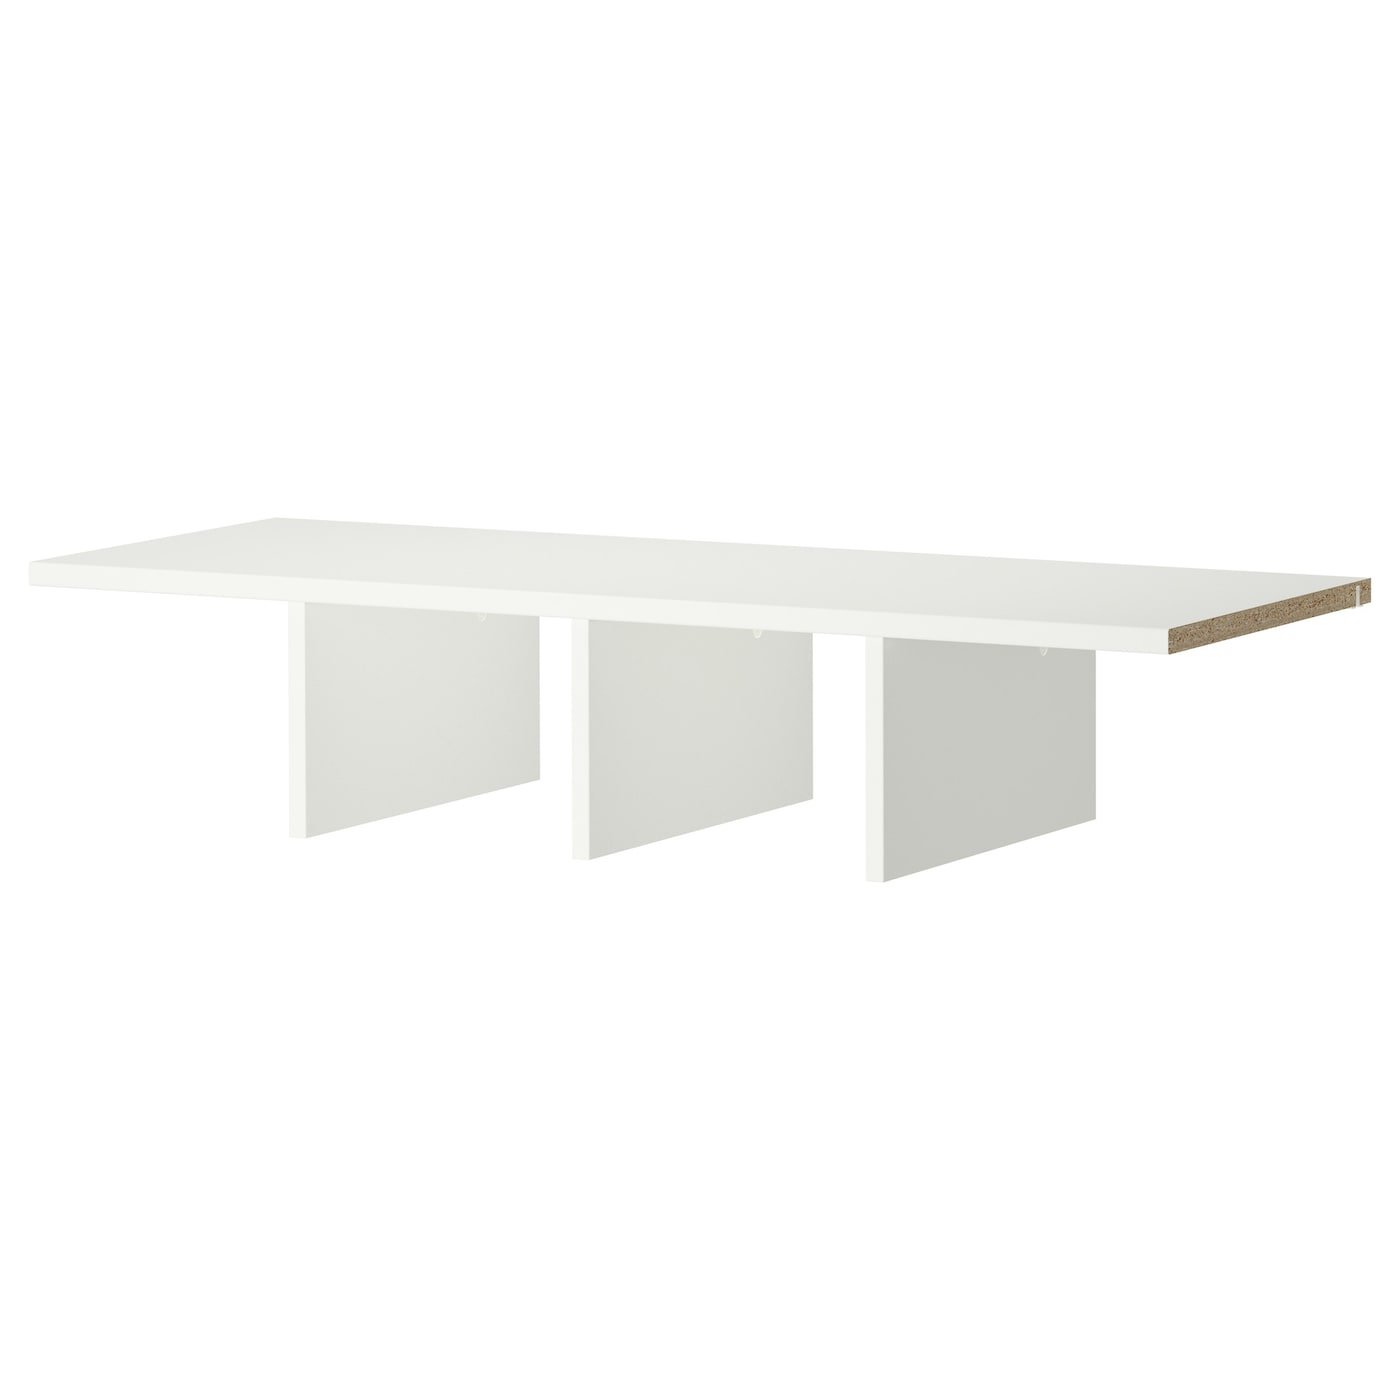 Ikea Komplement Shelf Insert 10 Year Guarantee Read About The Terms In Brochure